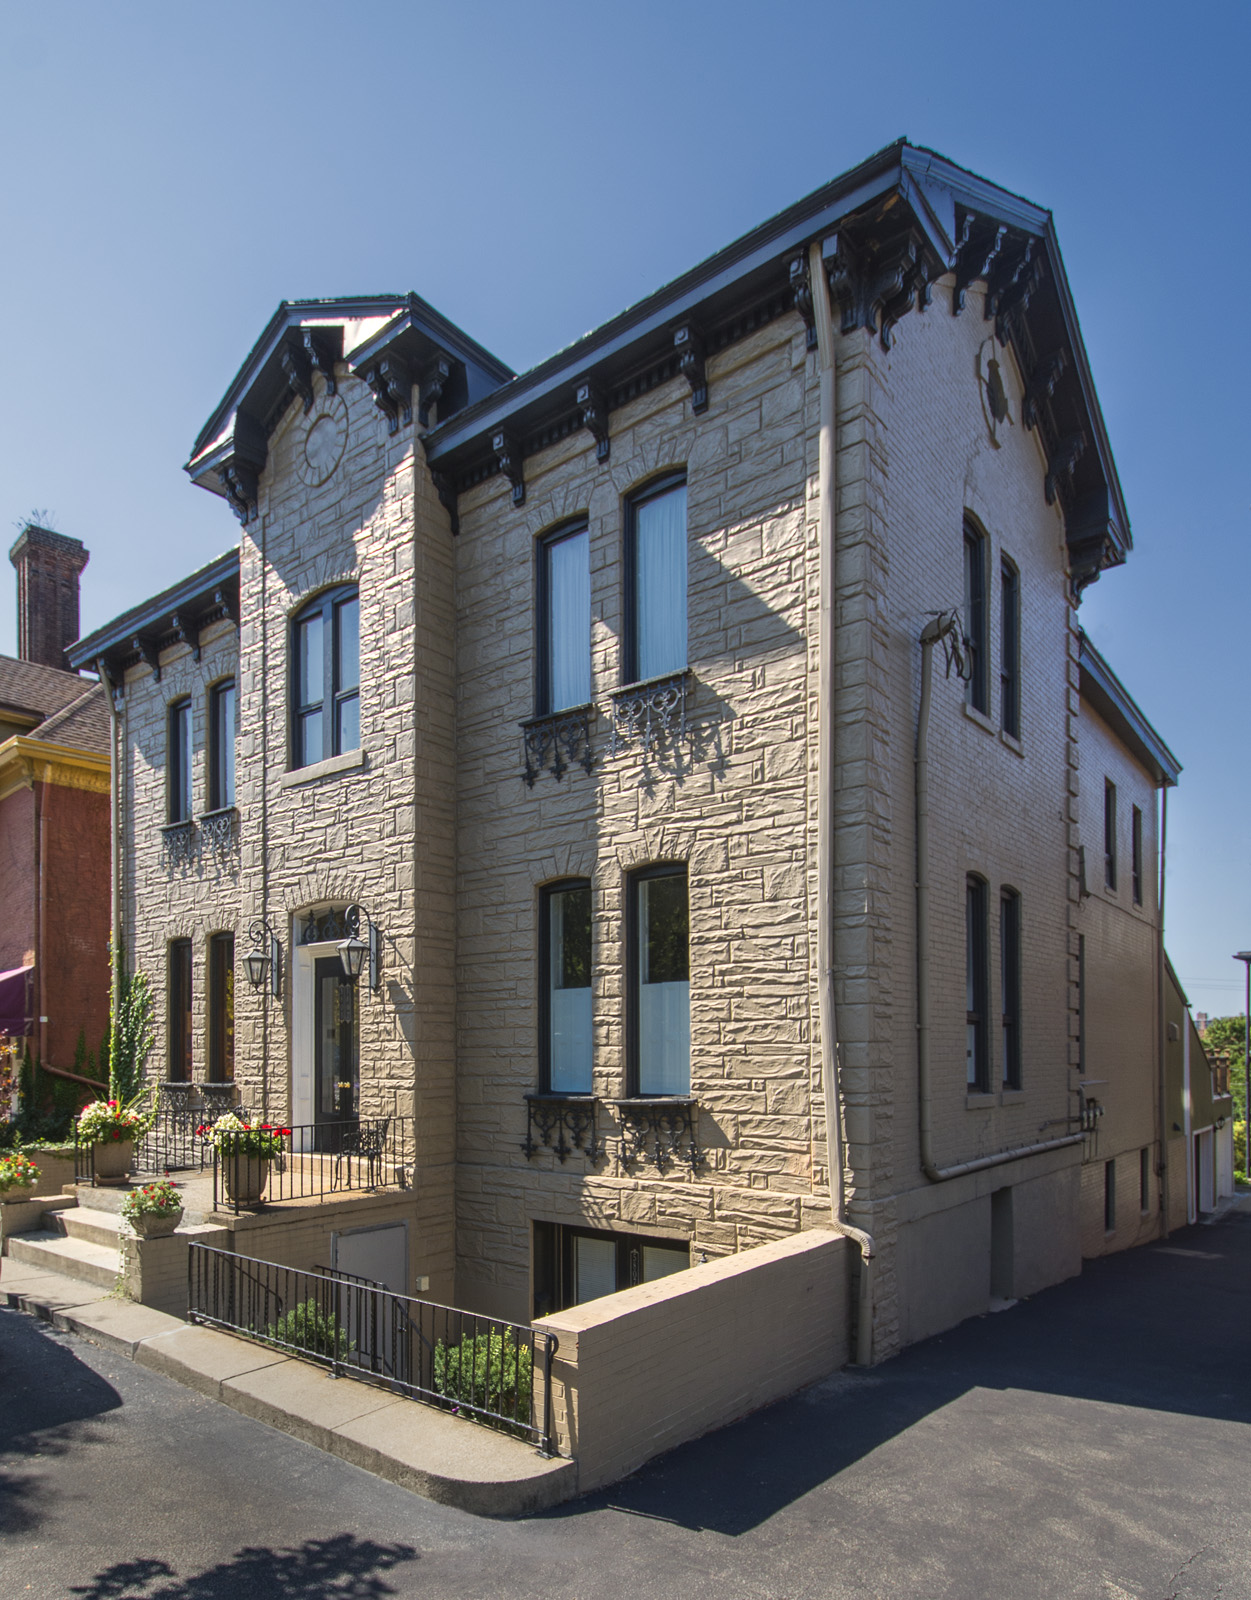 Townhouse for Sale at Charming Victorian Townhome in Shadyside 5807 5th Avenue Pittsburgh, Pennsylvania 15232 United States